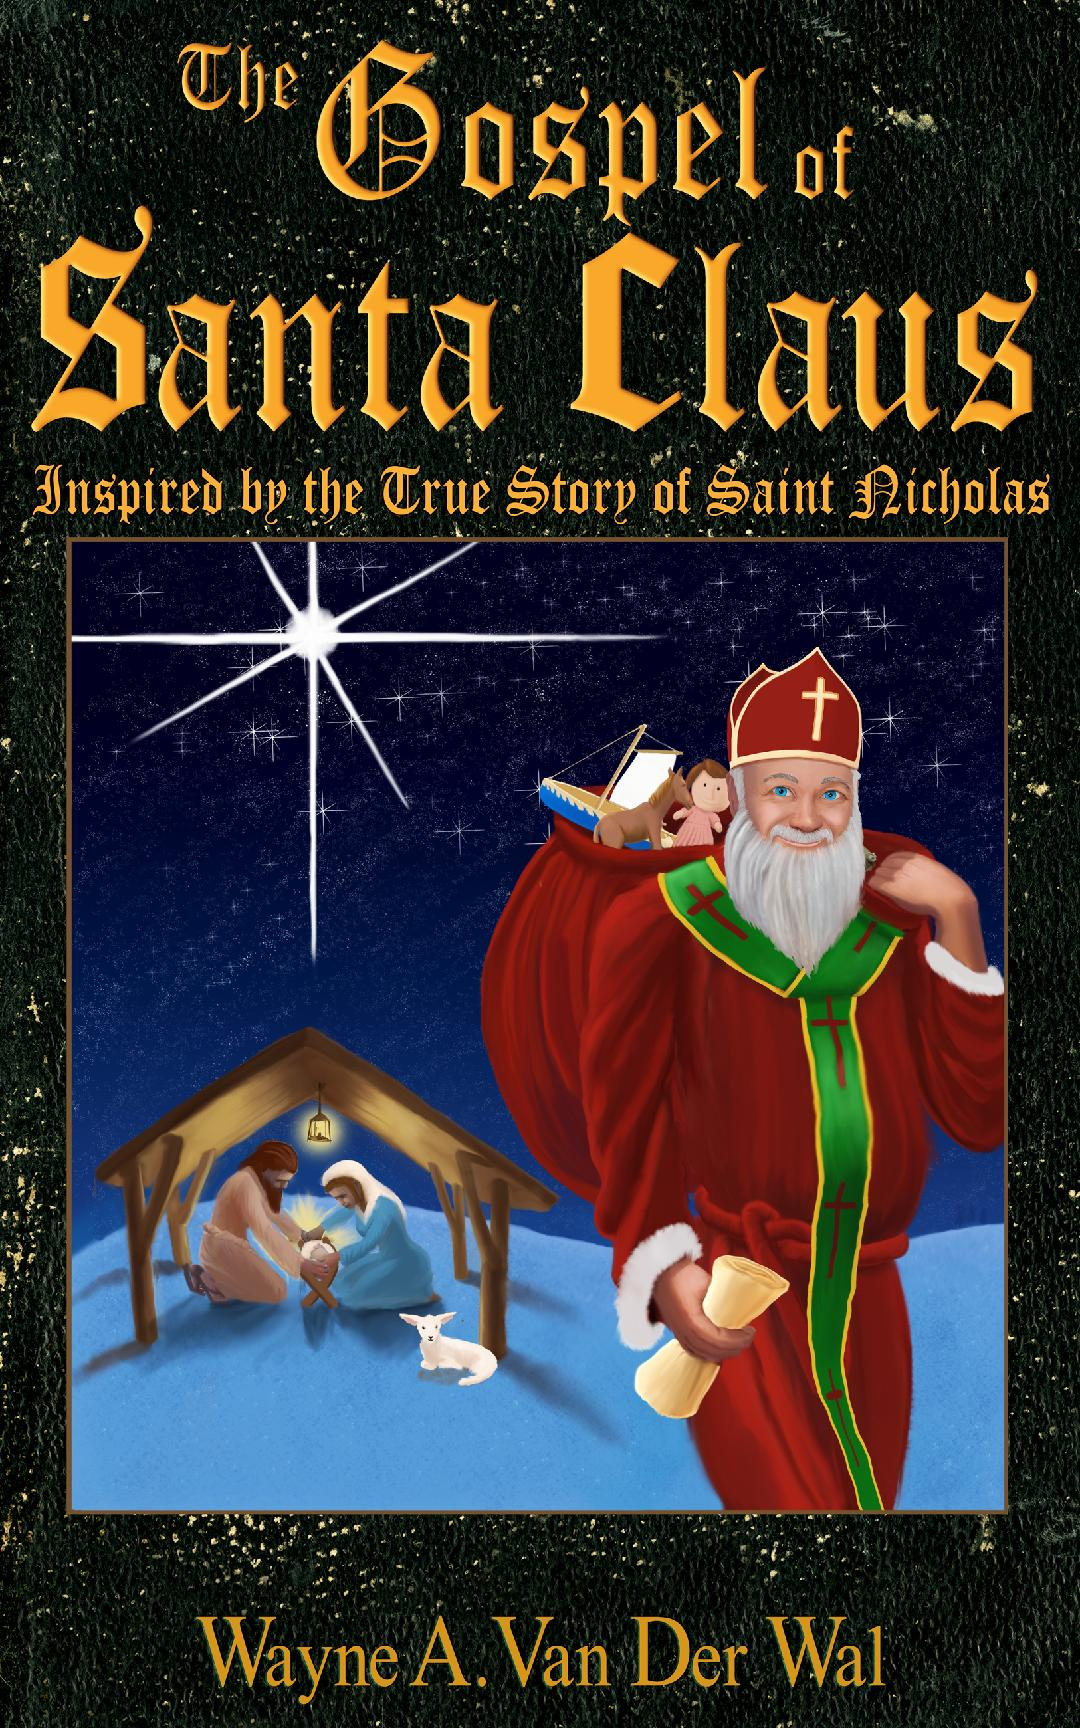 The Gospel of Santa Claus